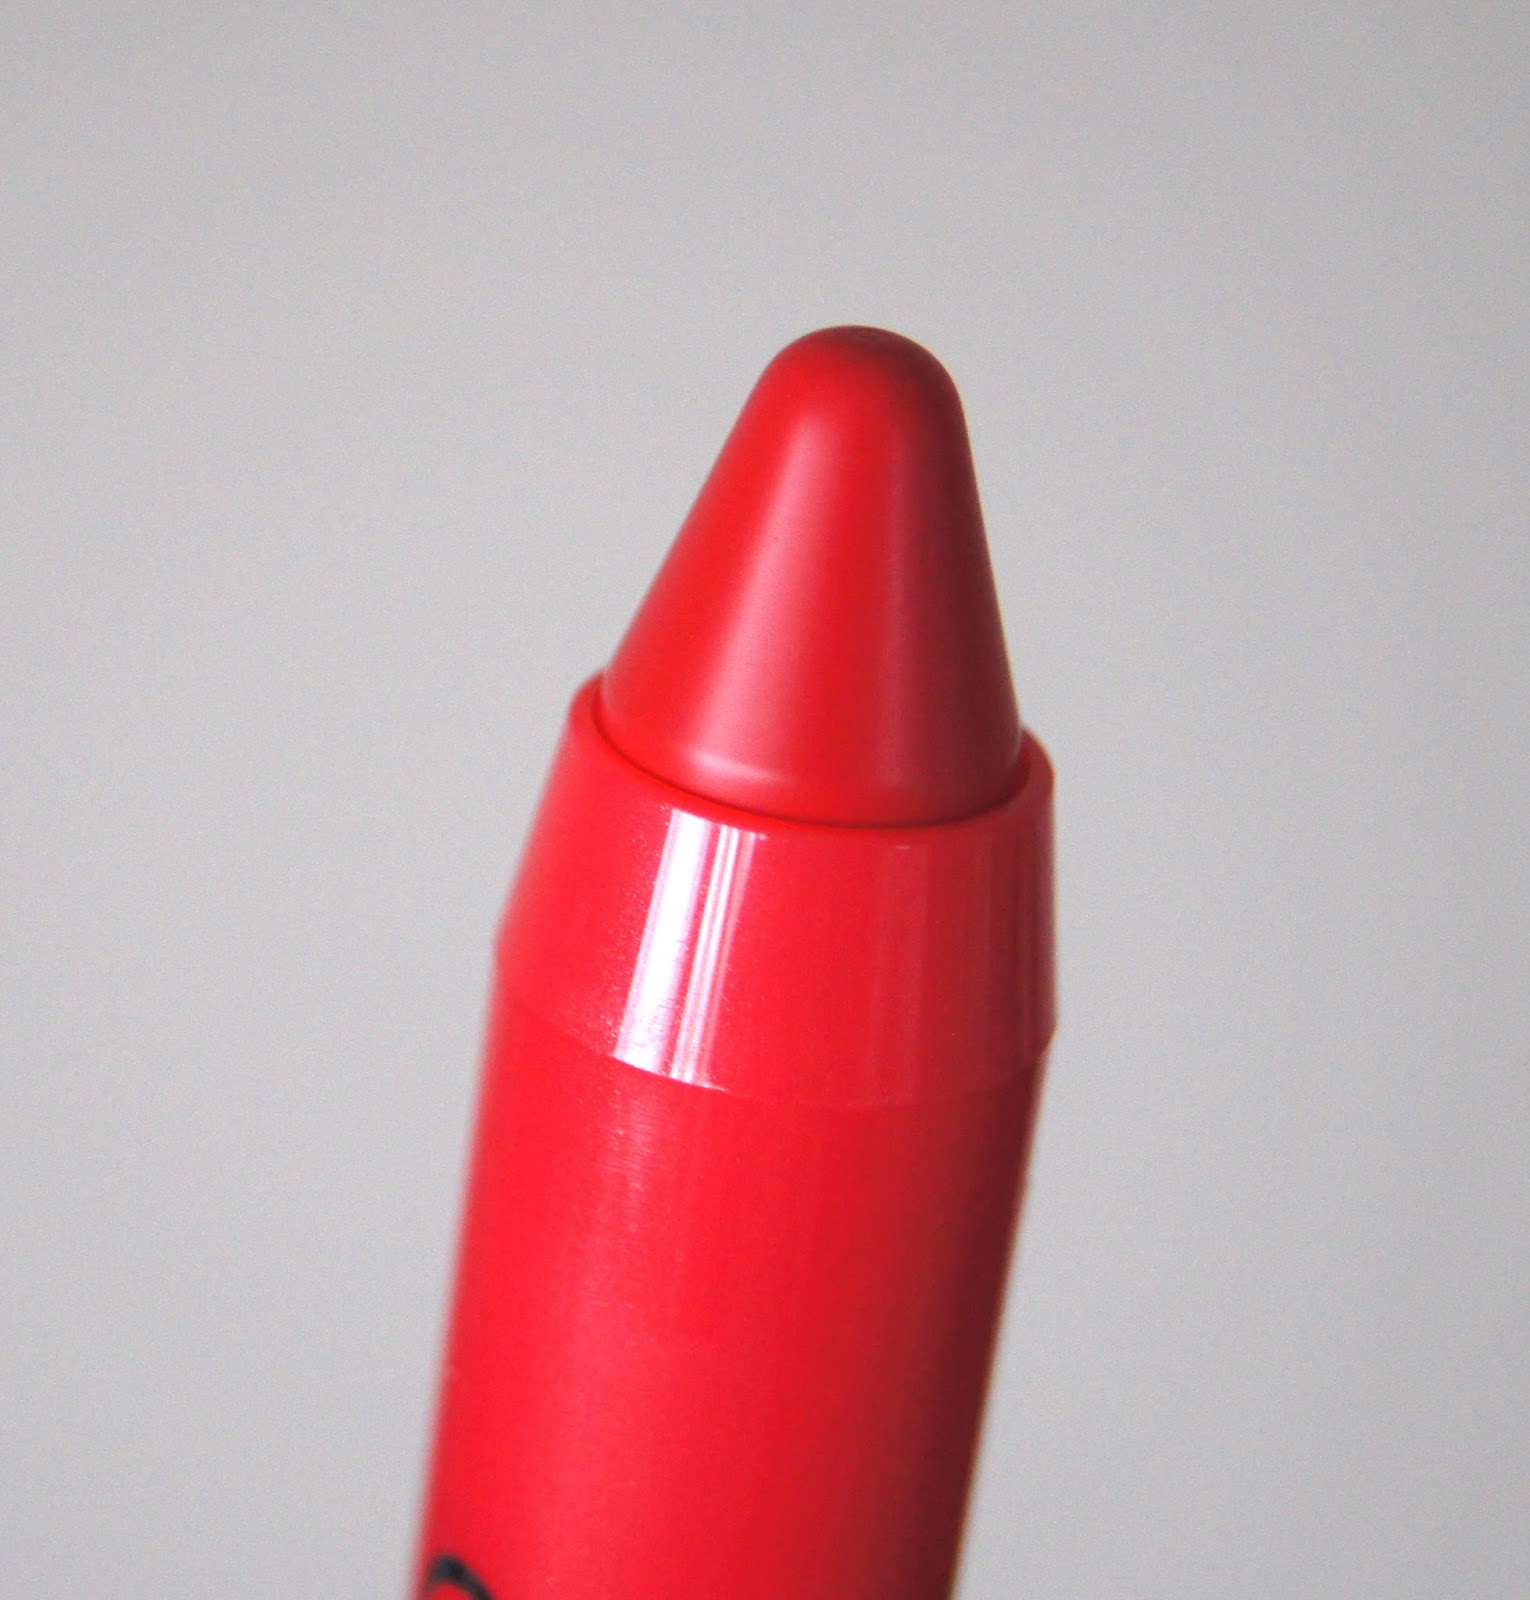 bourjois color boost glossy finish lipstick 01 red sunshine review